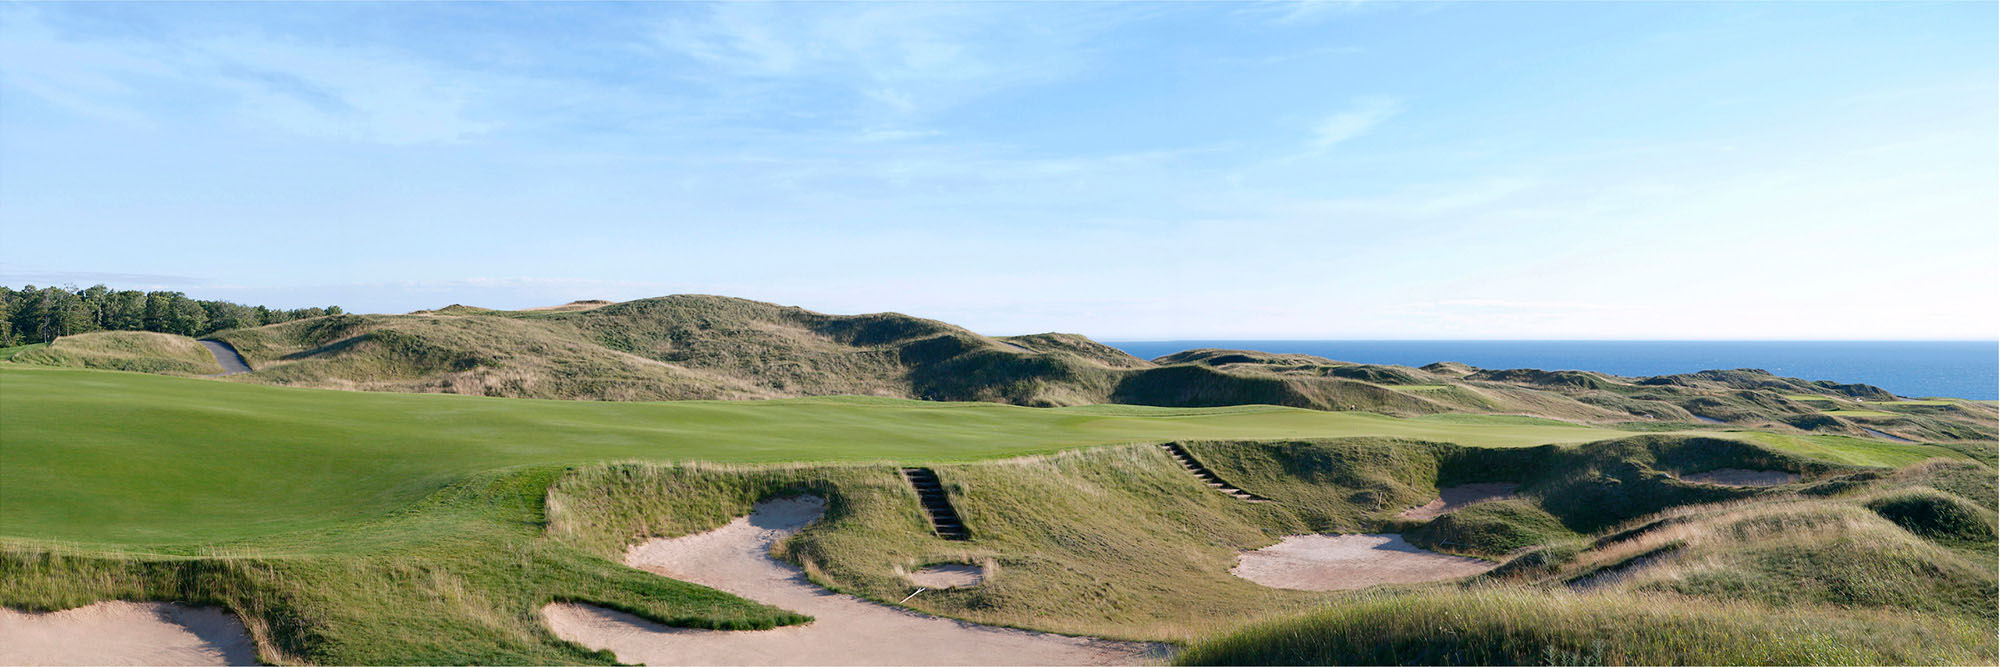 Golf Course Image - Arcadia Bluffs No. 16